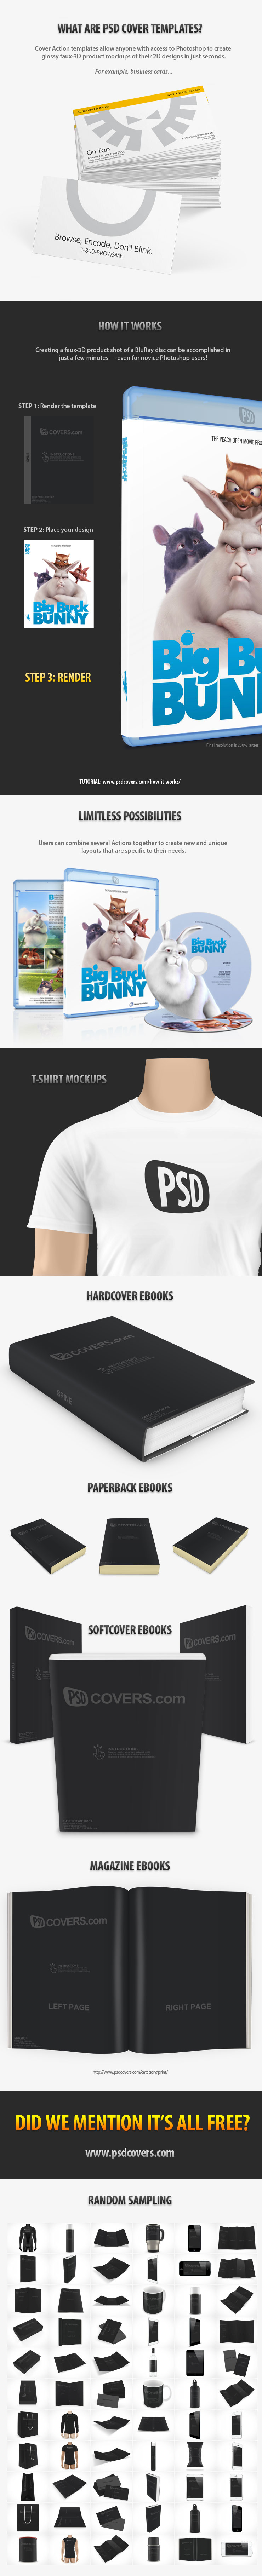 PSD Mock-up Templates Free Downloads